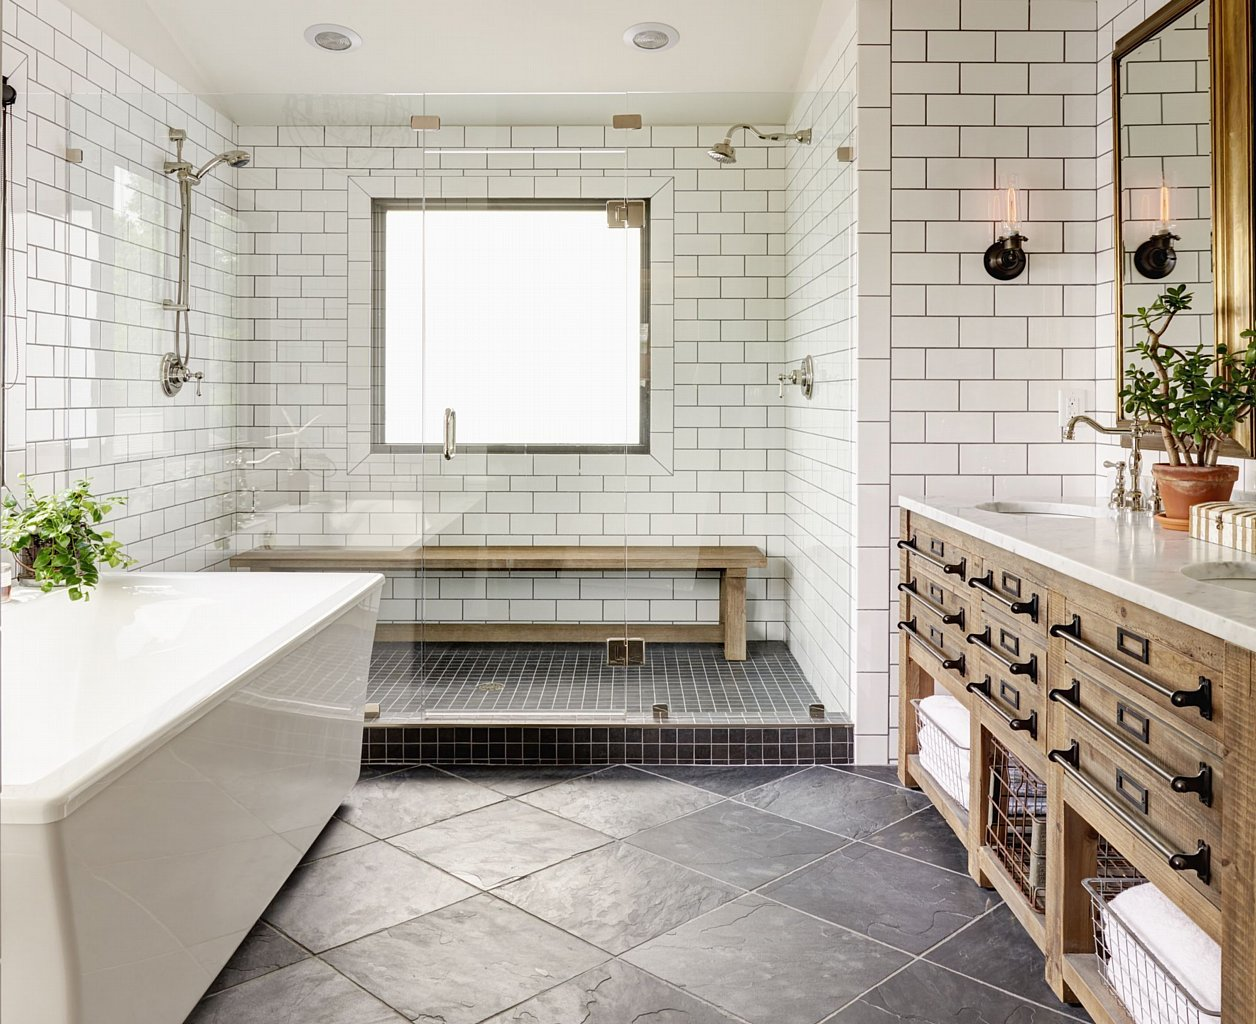 5 Easy Ways To Style a Modern Farmhouse Bathroom on Modern Farmhouse Shower  id=35581